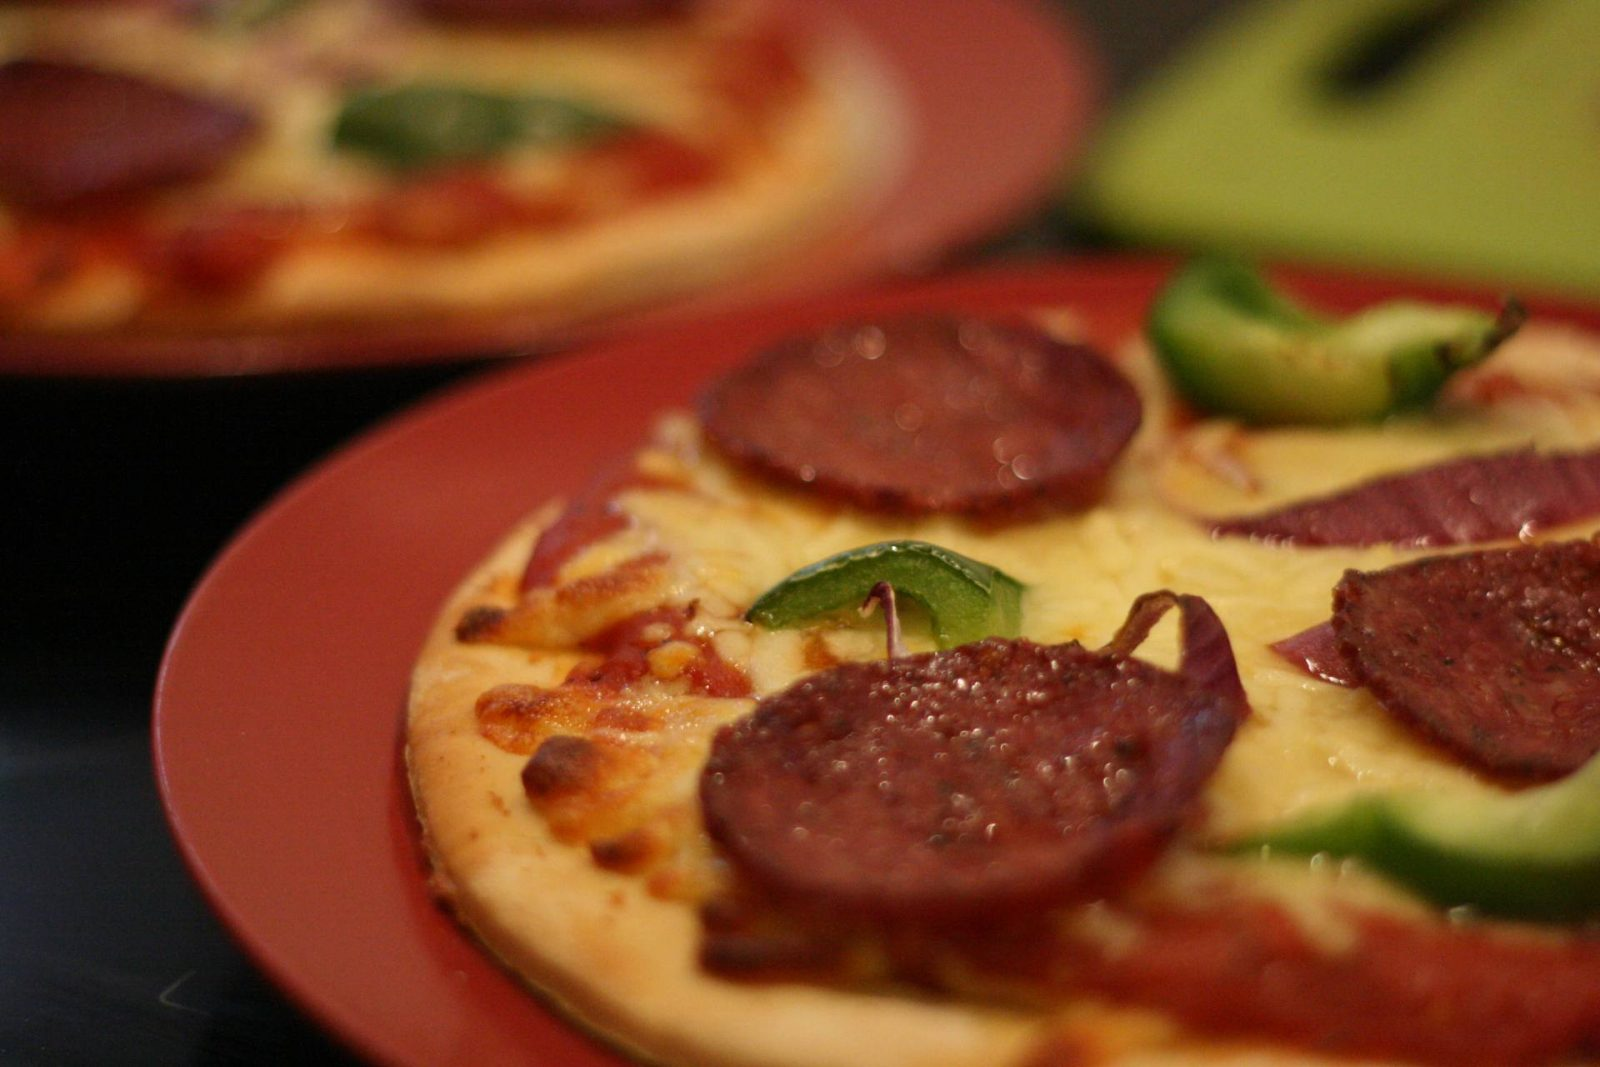 Carnivore Club - homemade pizza using Great Glen Charcuterie salami